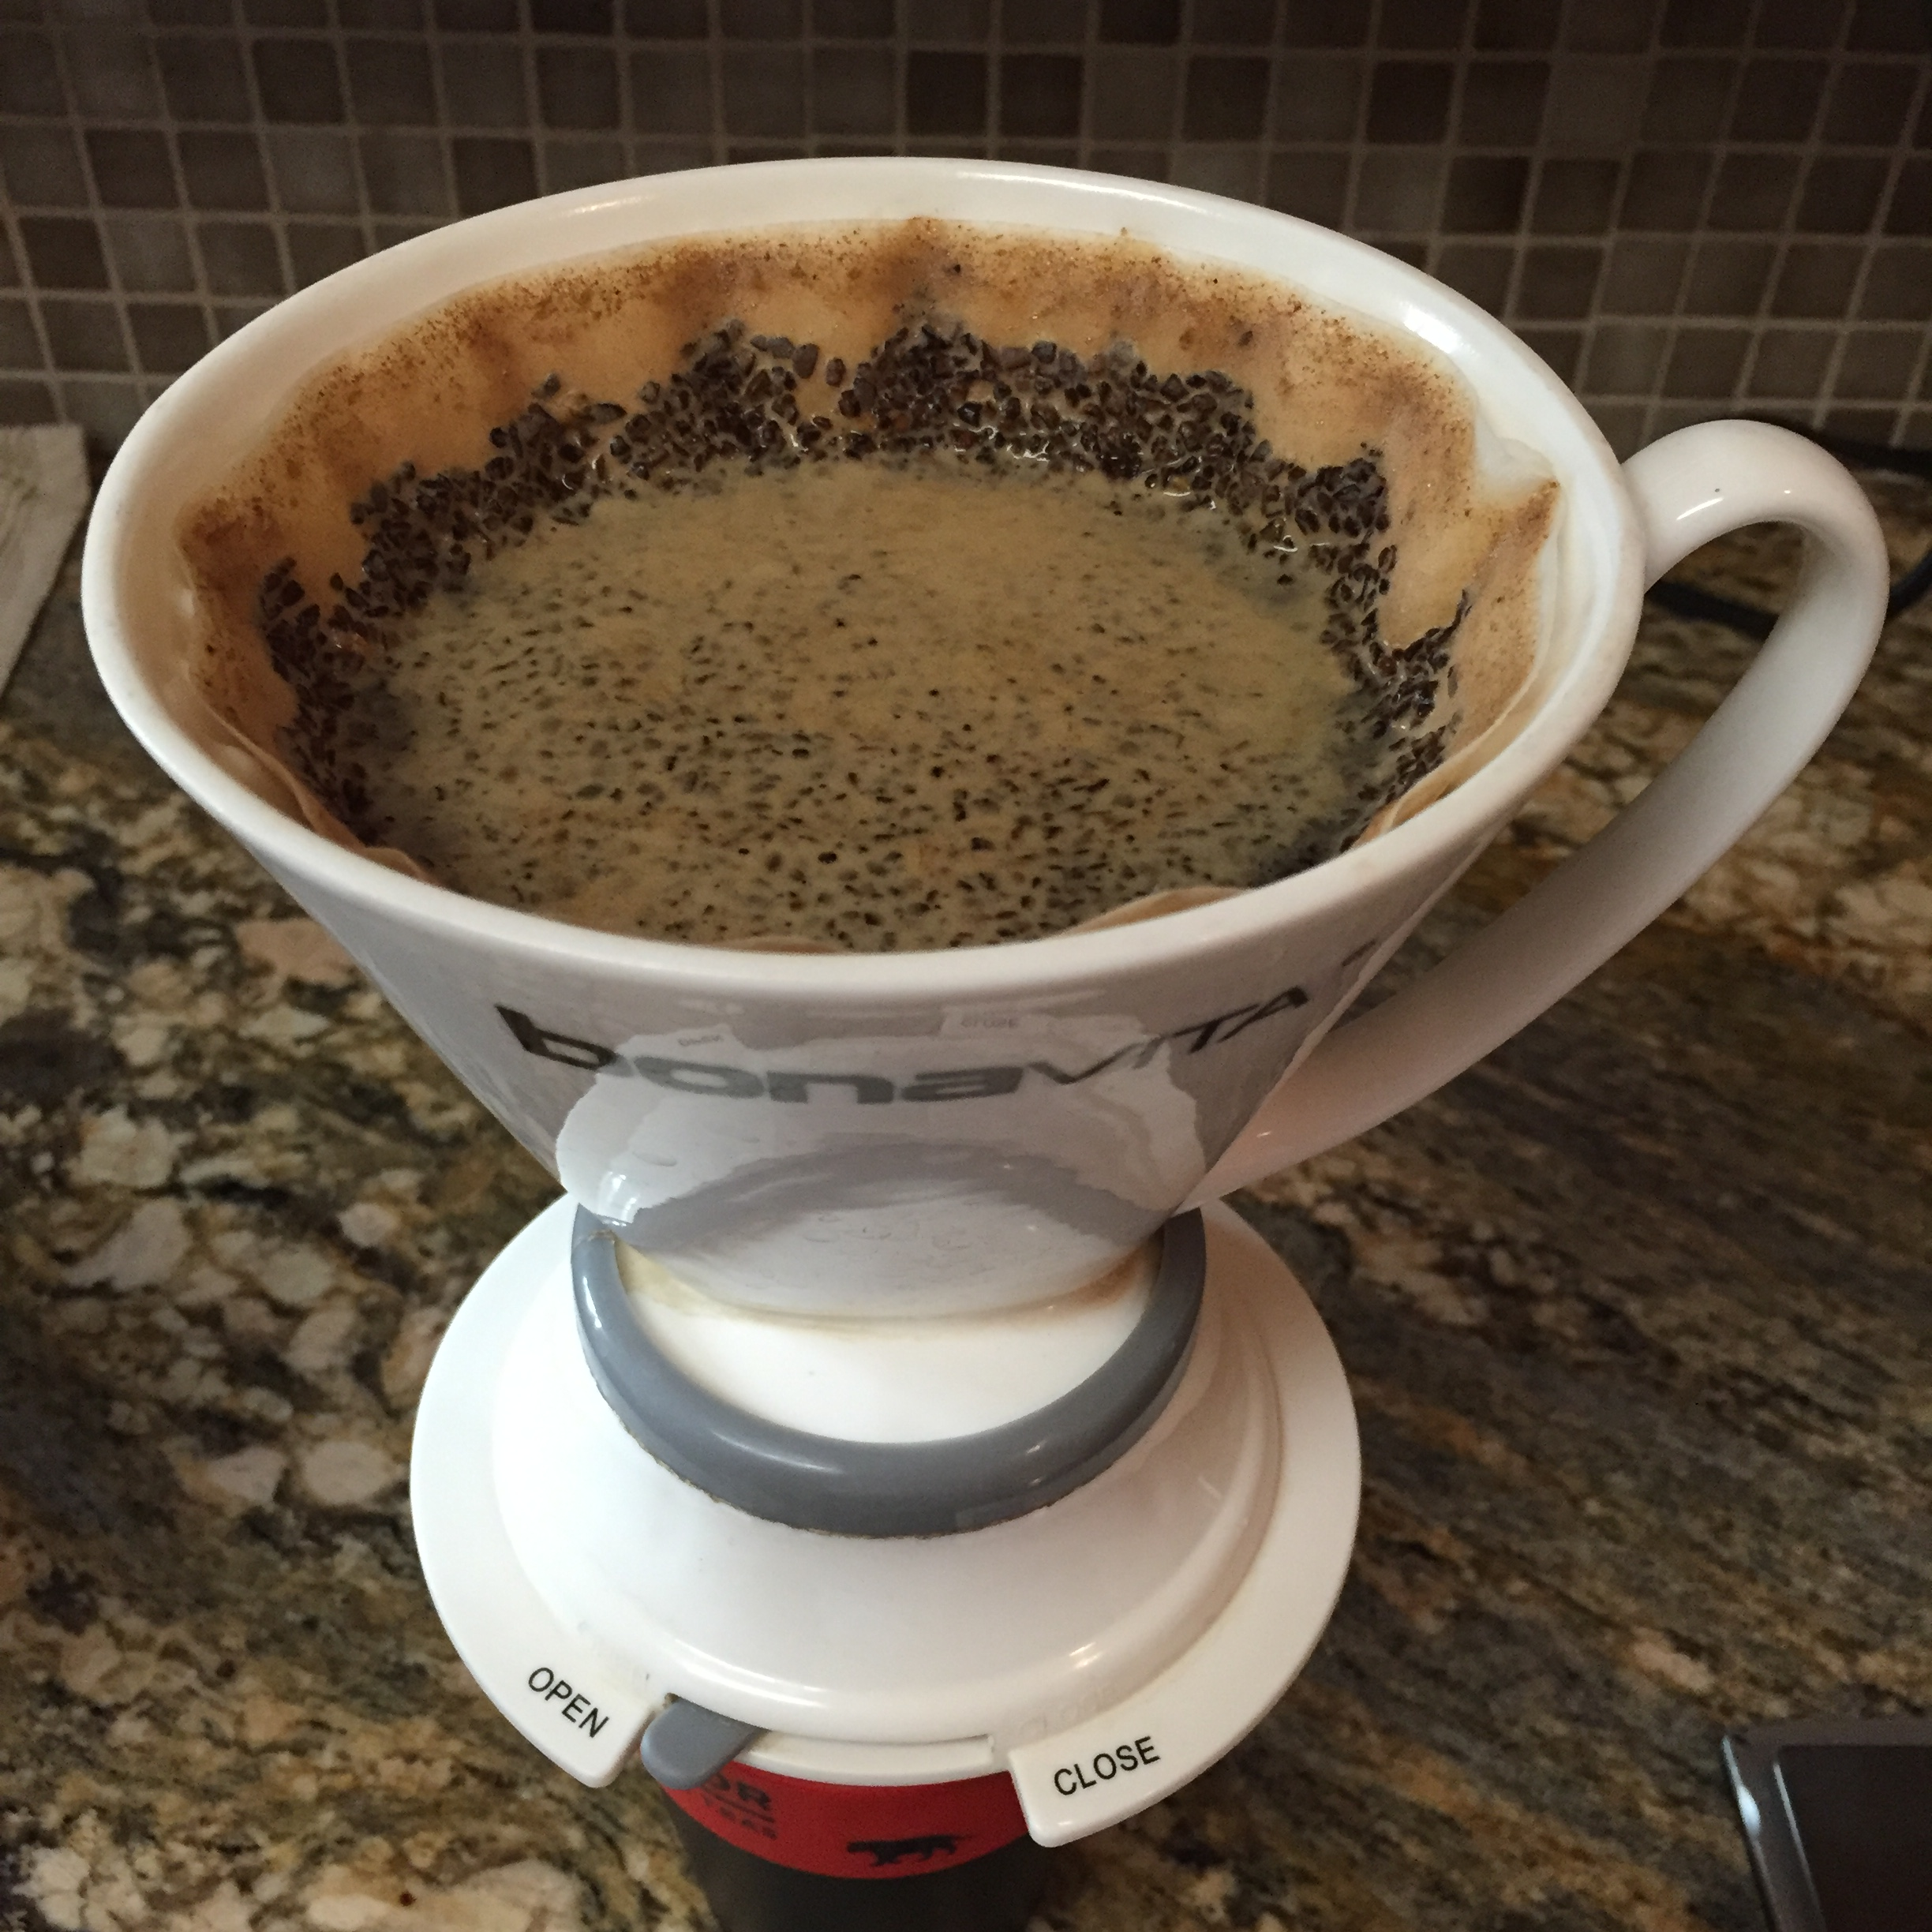 The Maria Rosa Oidor from   Cartel Coffee Lab  shined in the   Bonavita Immersion Dripper  creating a silky smooth, sweet cup.